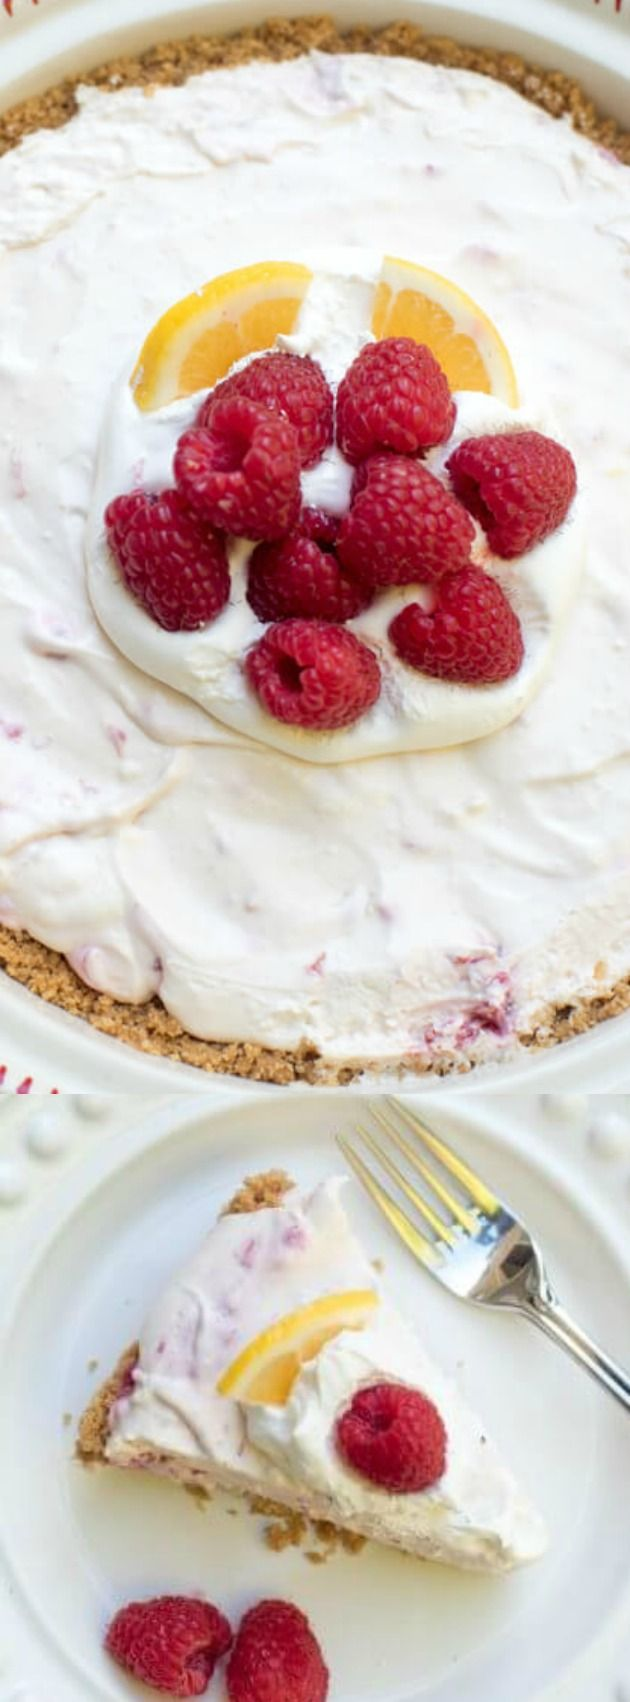 This Creamy Lemon Raspberry Pie from Valerie's Kitchen is a lemony, sweet treat! It has a wonderful light and creamy texture, a burst of tart-sweet lemon flavor and a gorgeous fresh raspberry swirl!